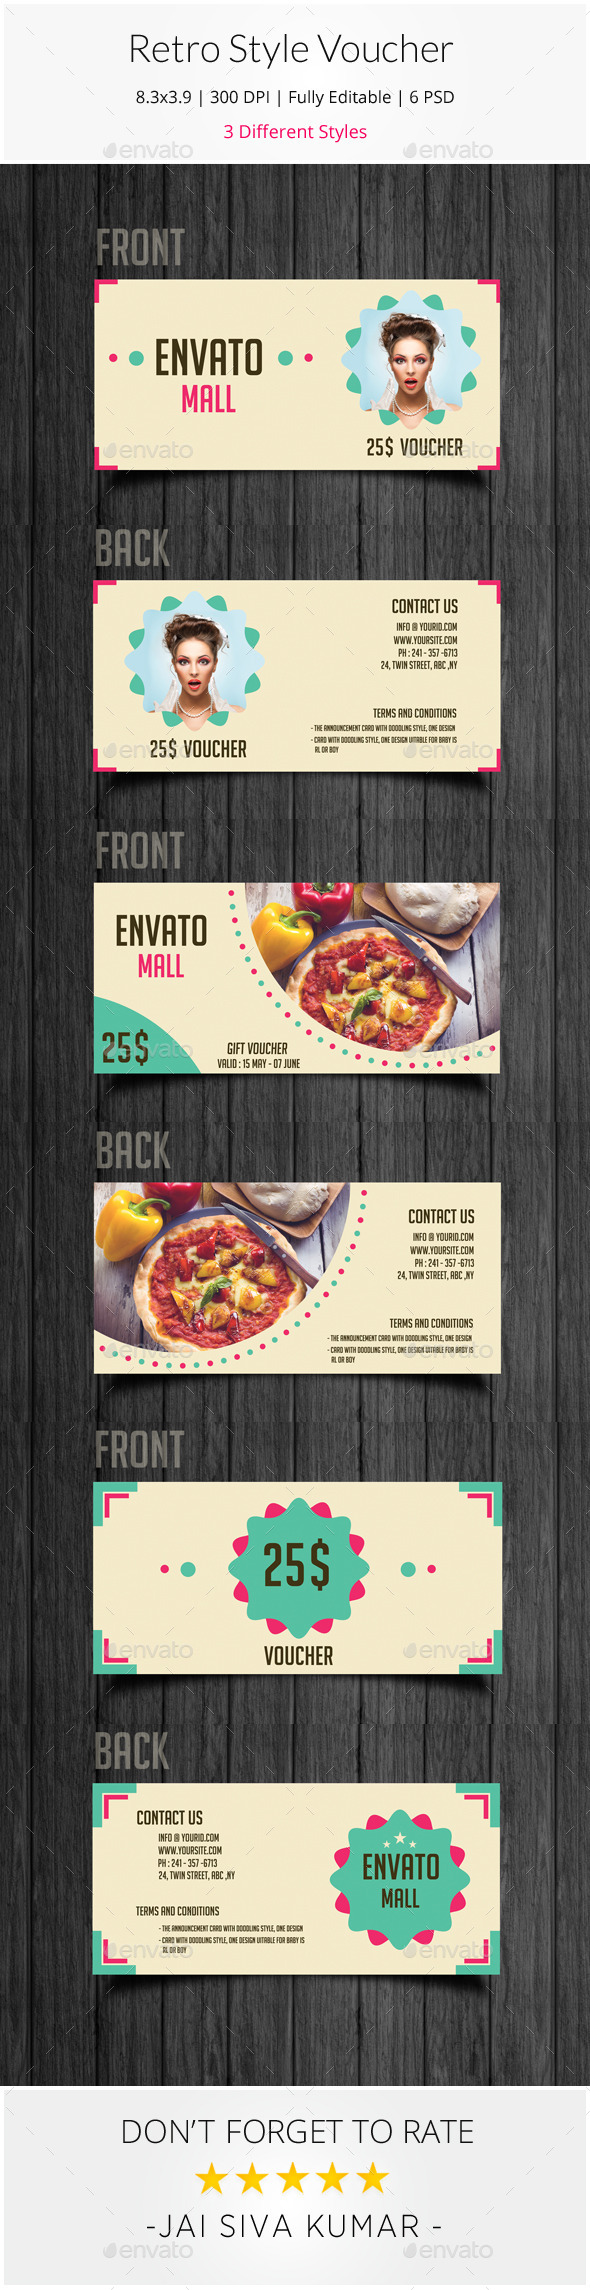 Retro Style Gift Voucher - Loyalty Cards Cards & Invites